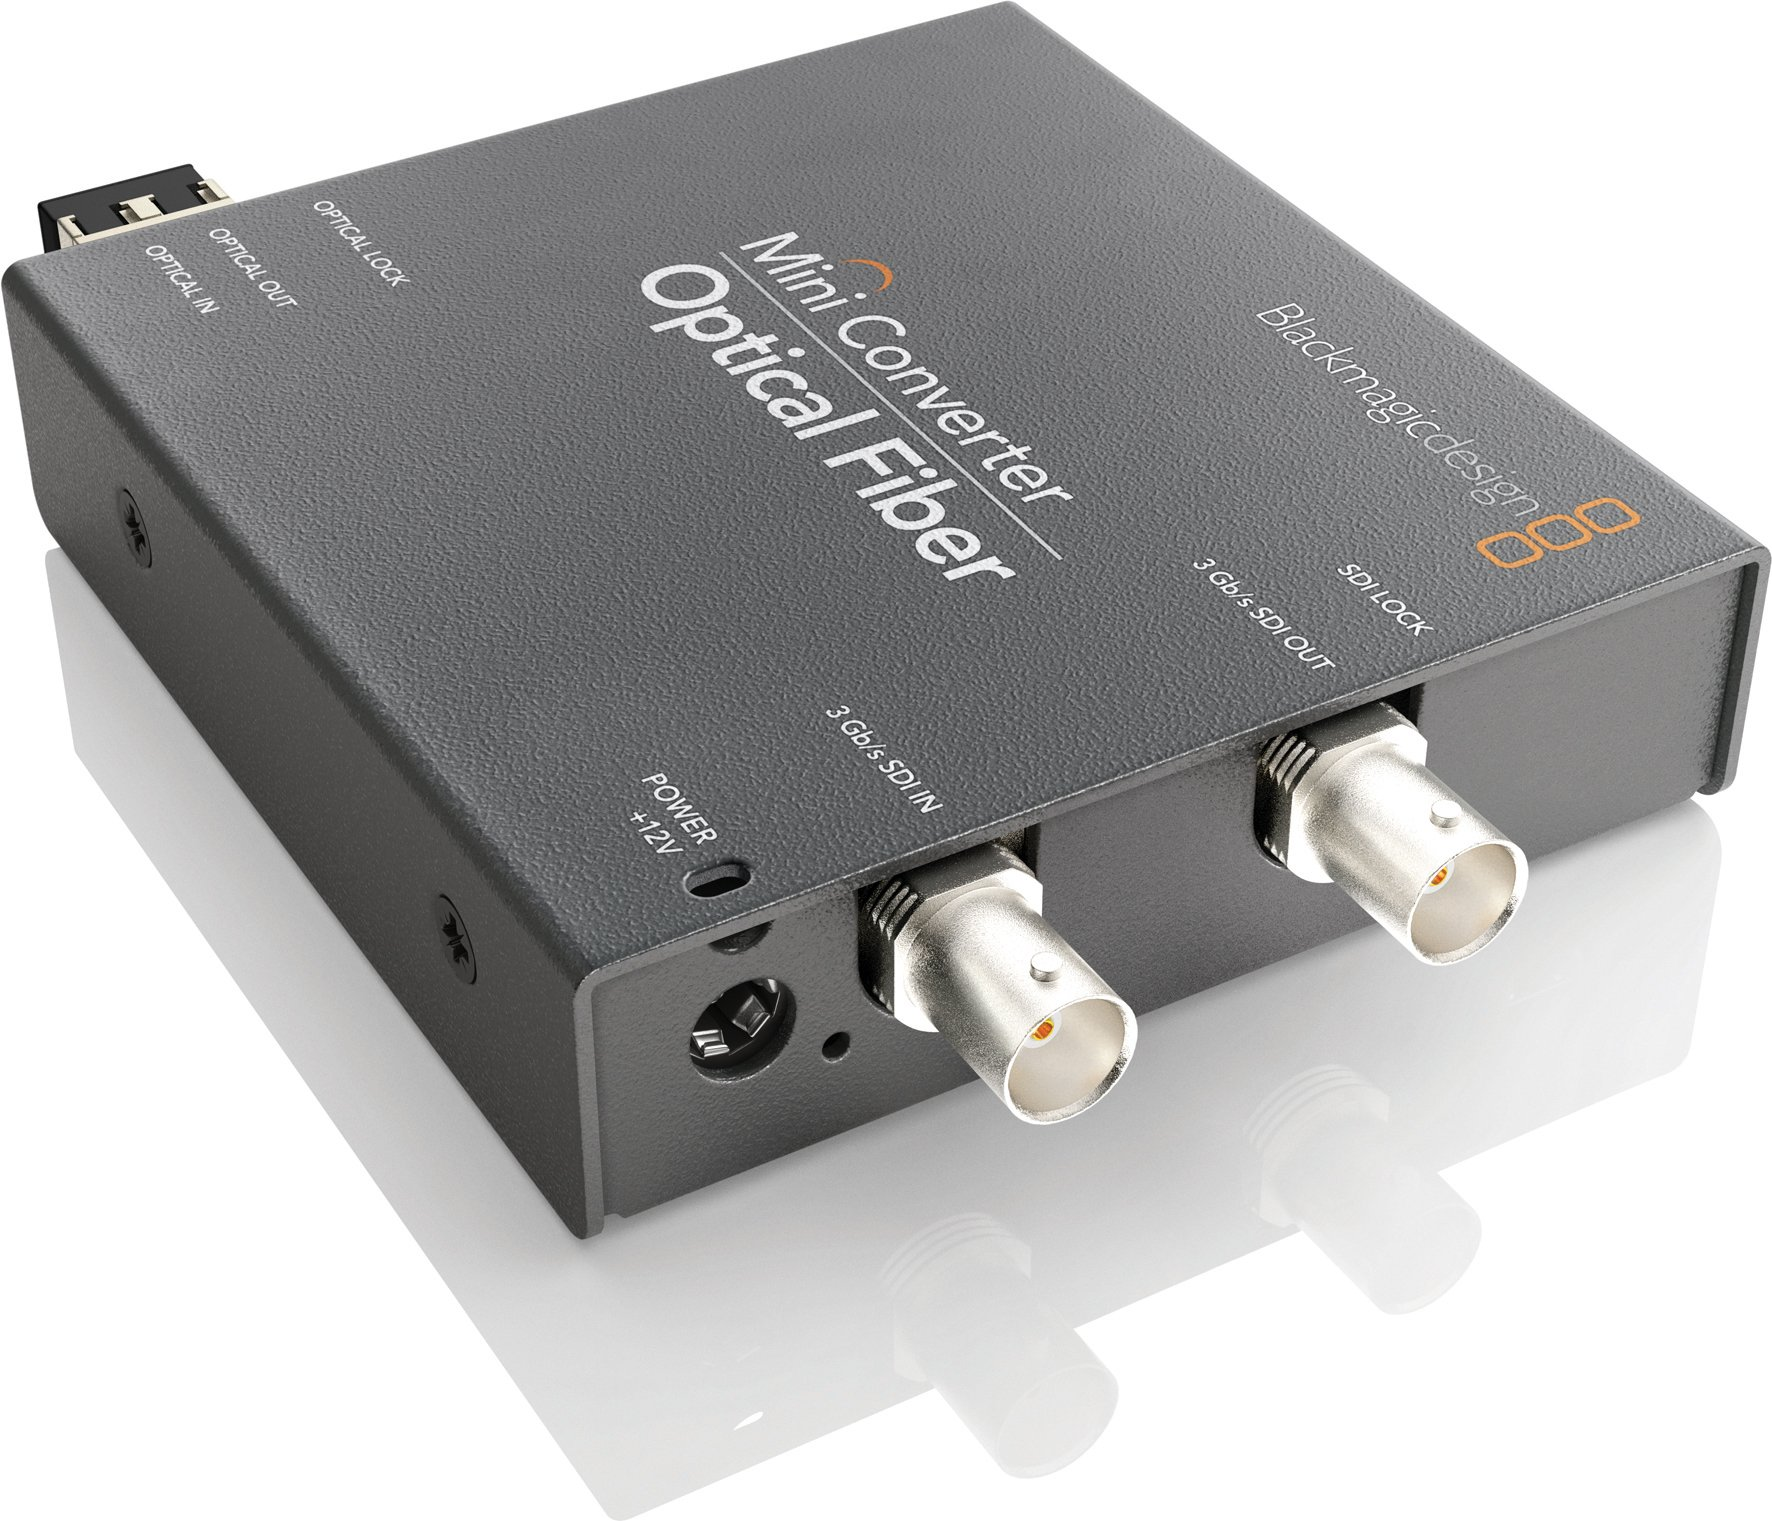 Blackmagic Design Mini Converter - Optical Fiber (BMD-CONVMOF)